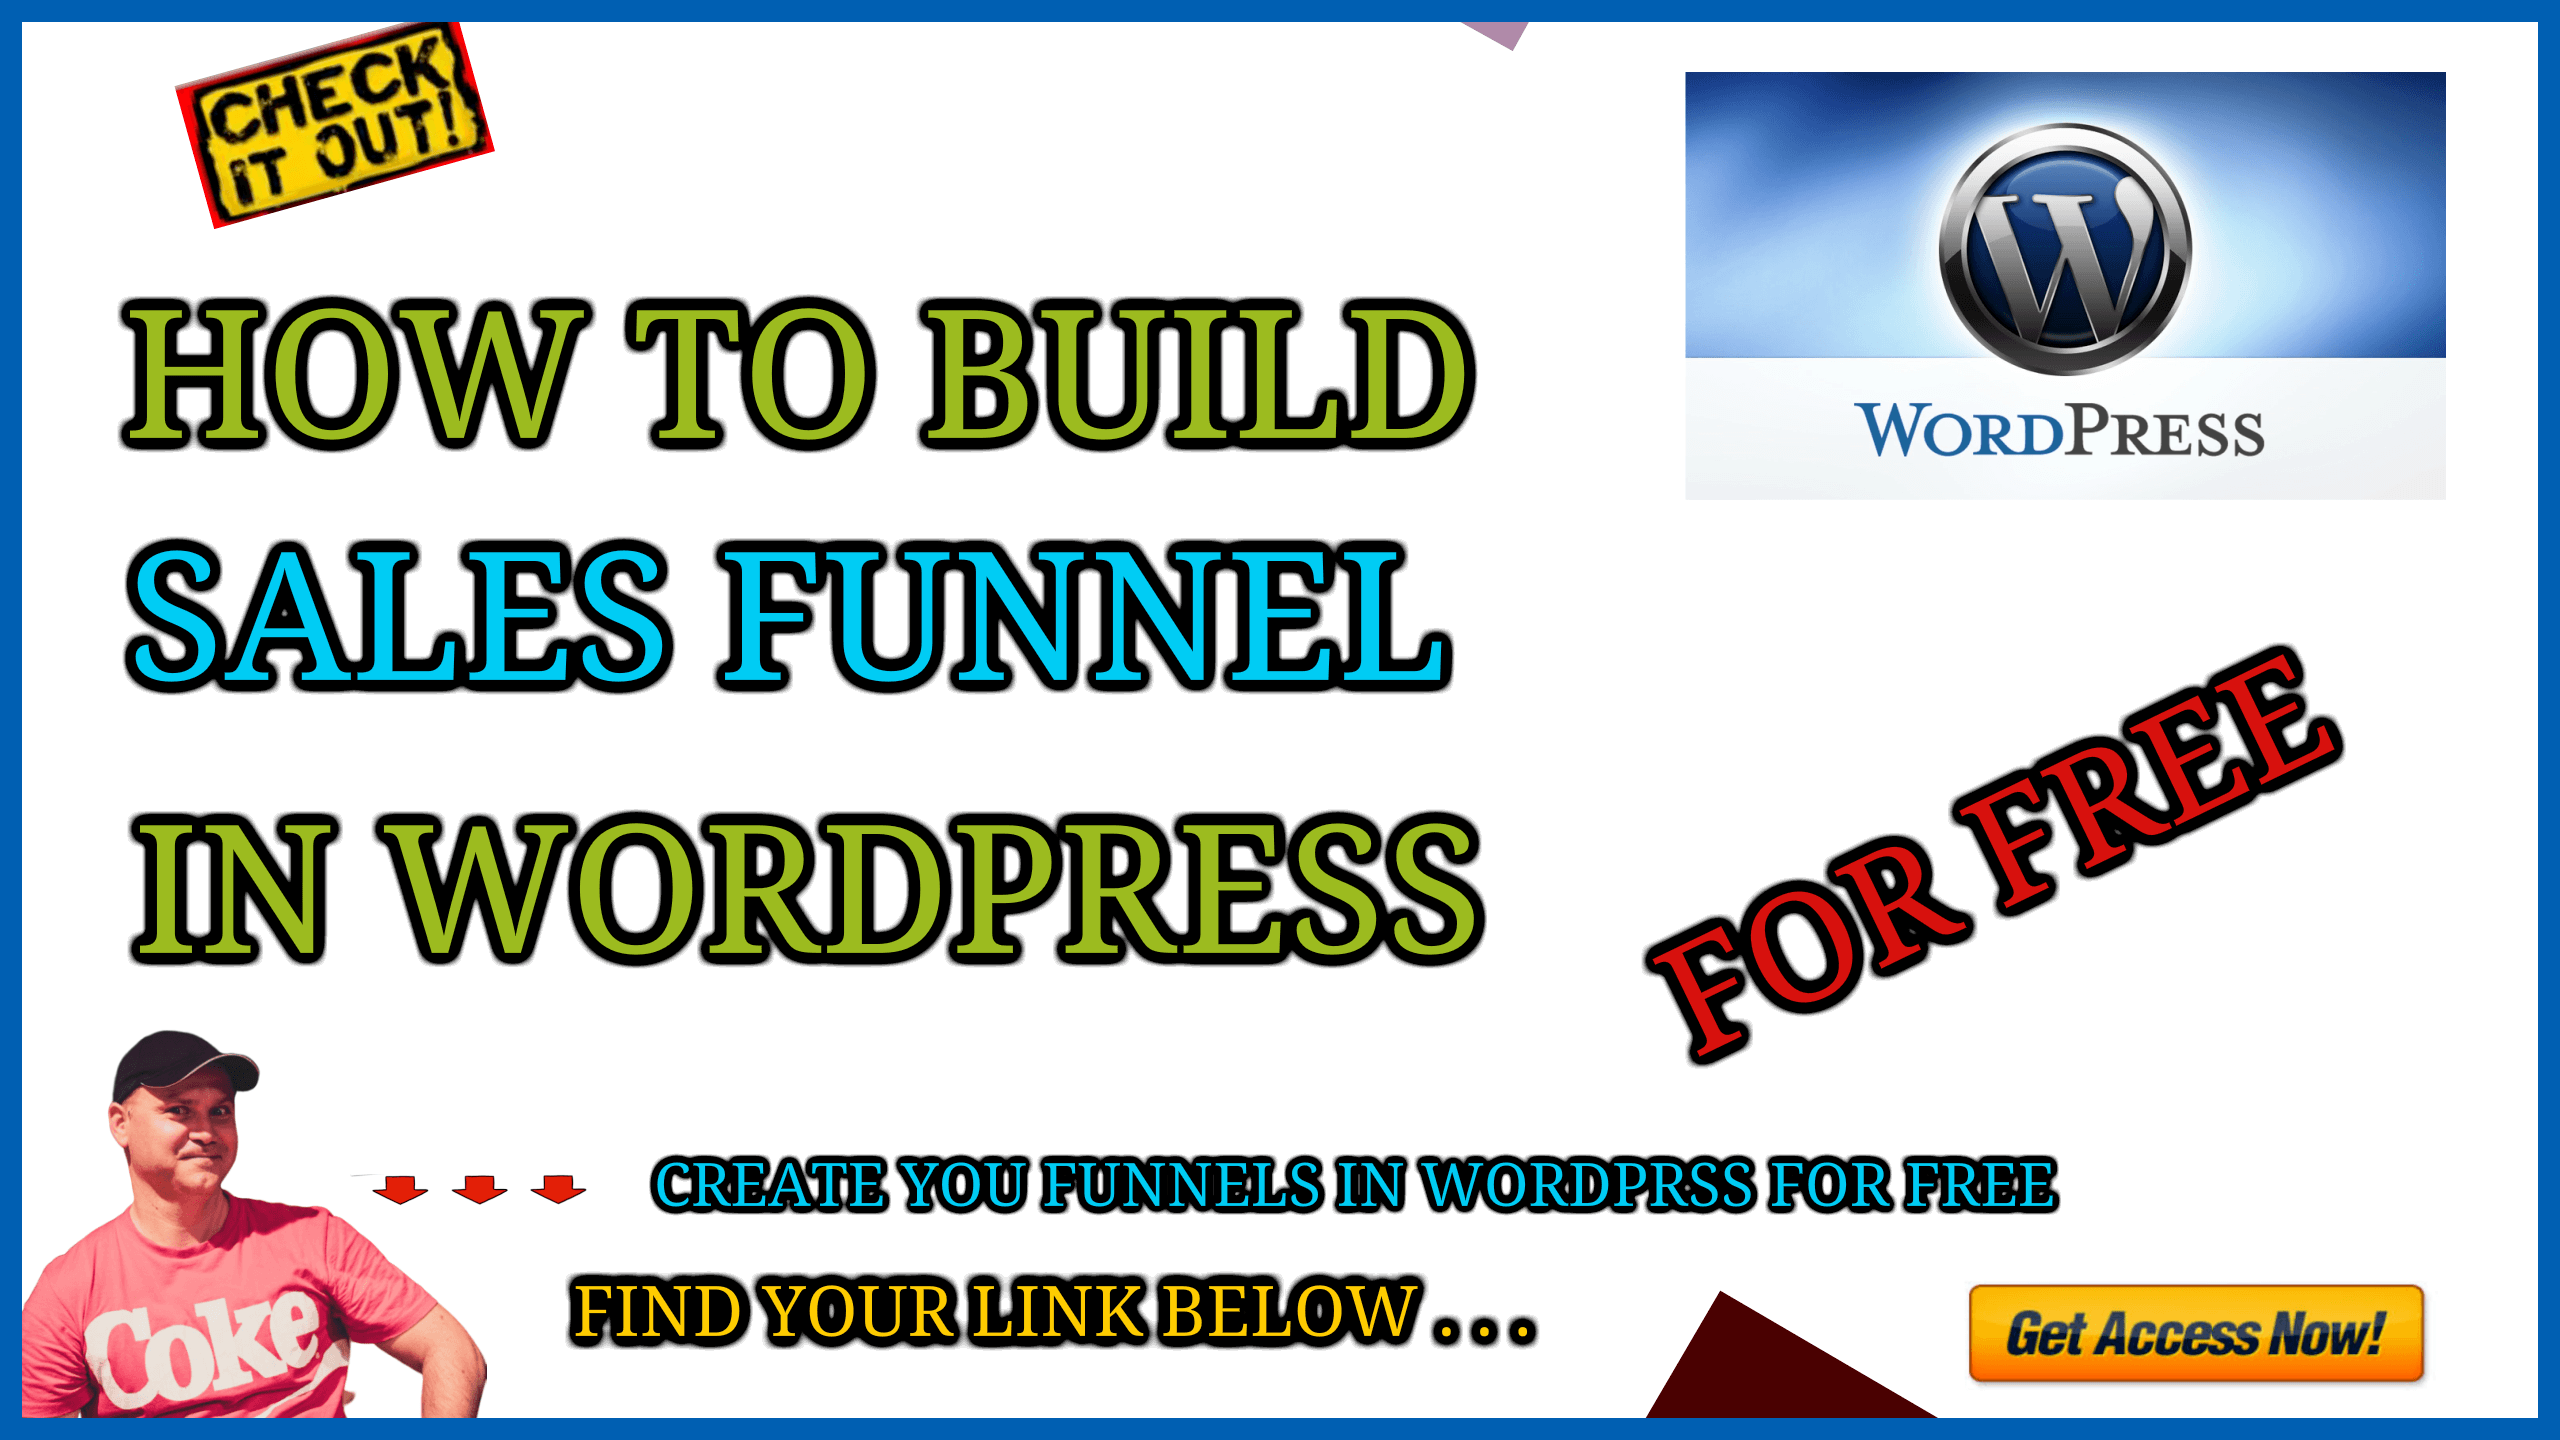 How to build a sales funnel in wordpress for free